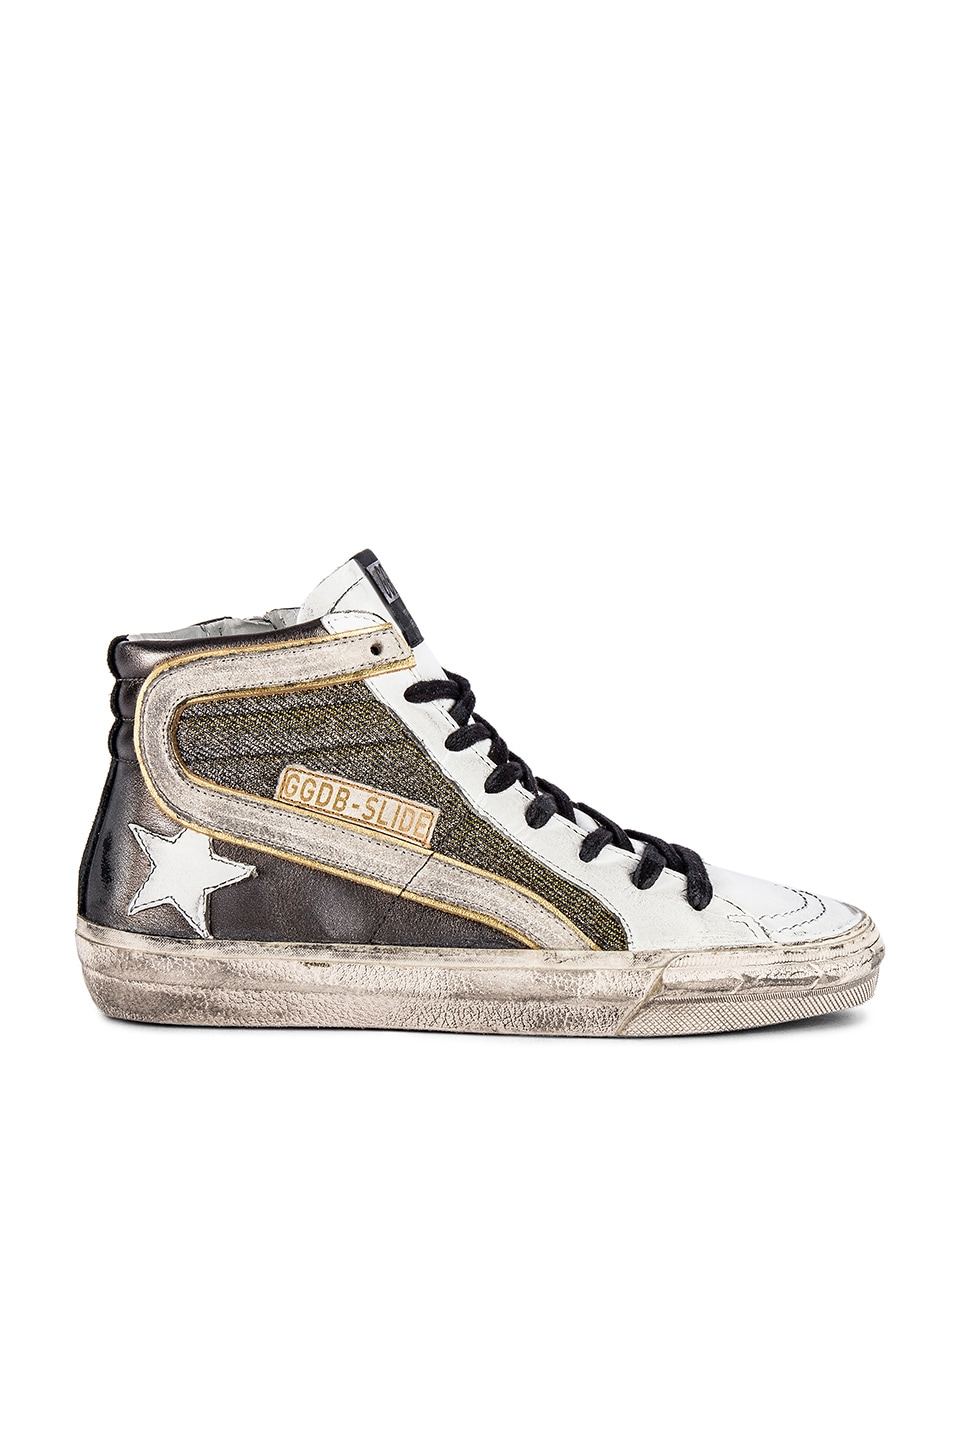 Golden Goose Slide Sneaker in Gun Metal, Shimmer & White